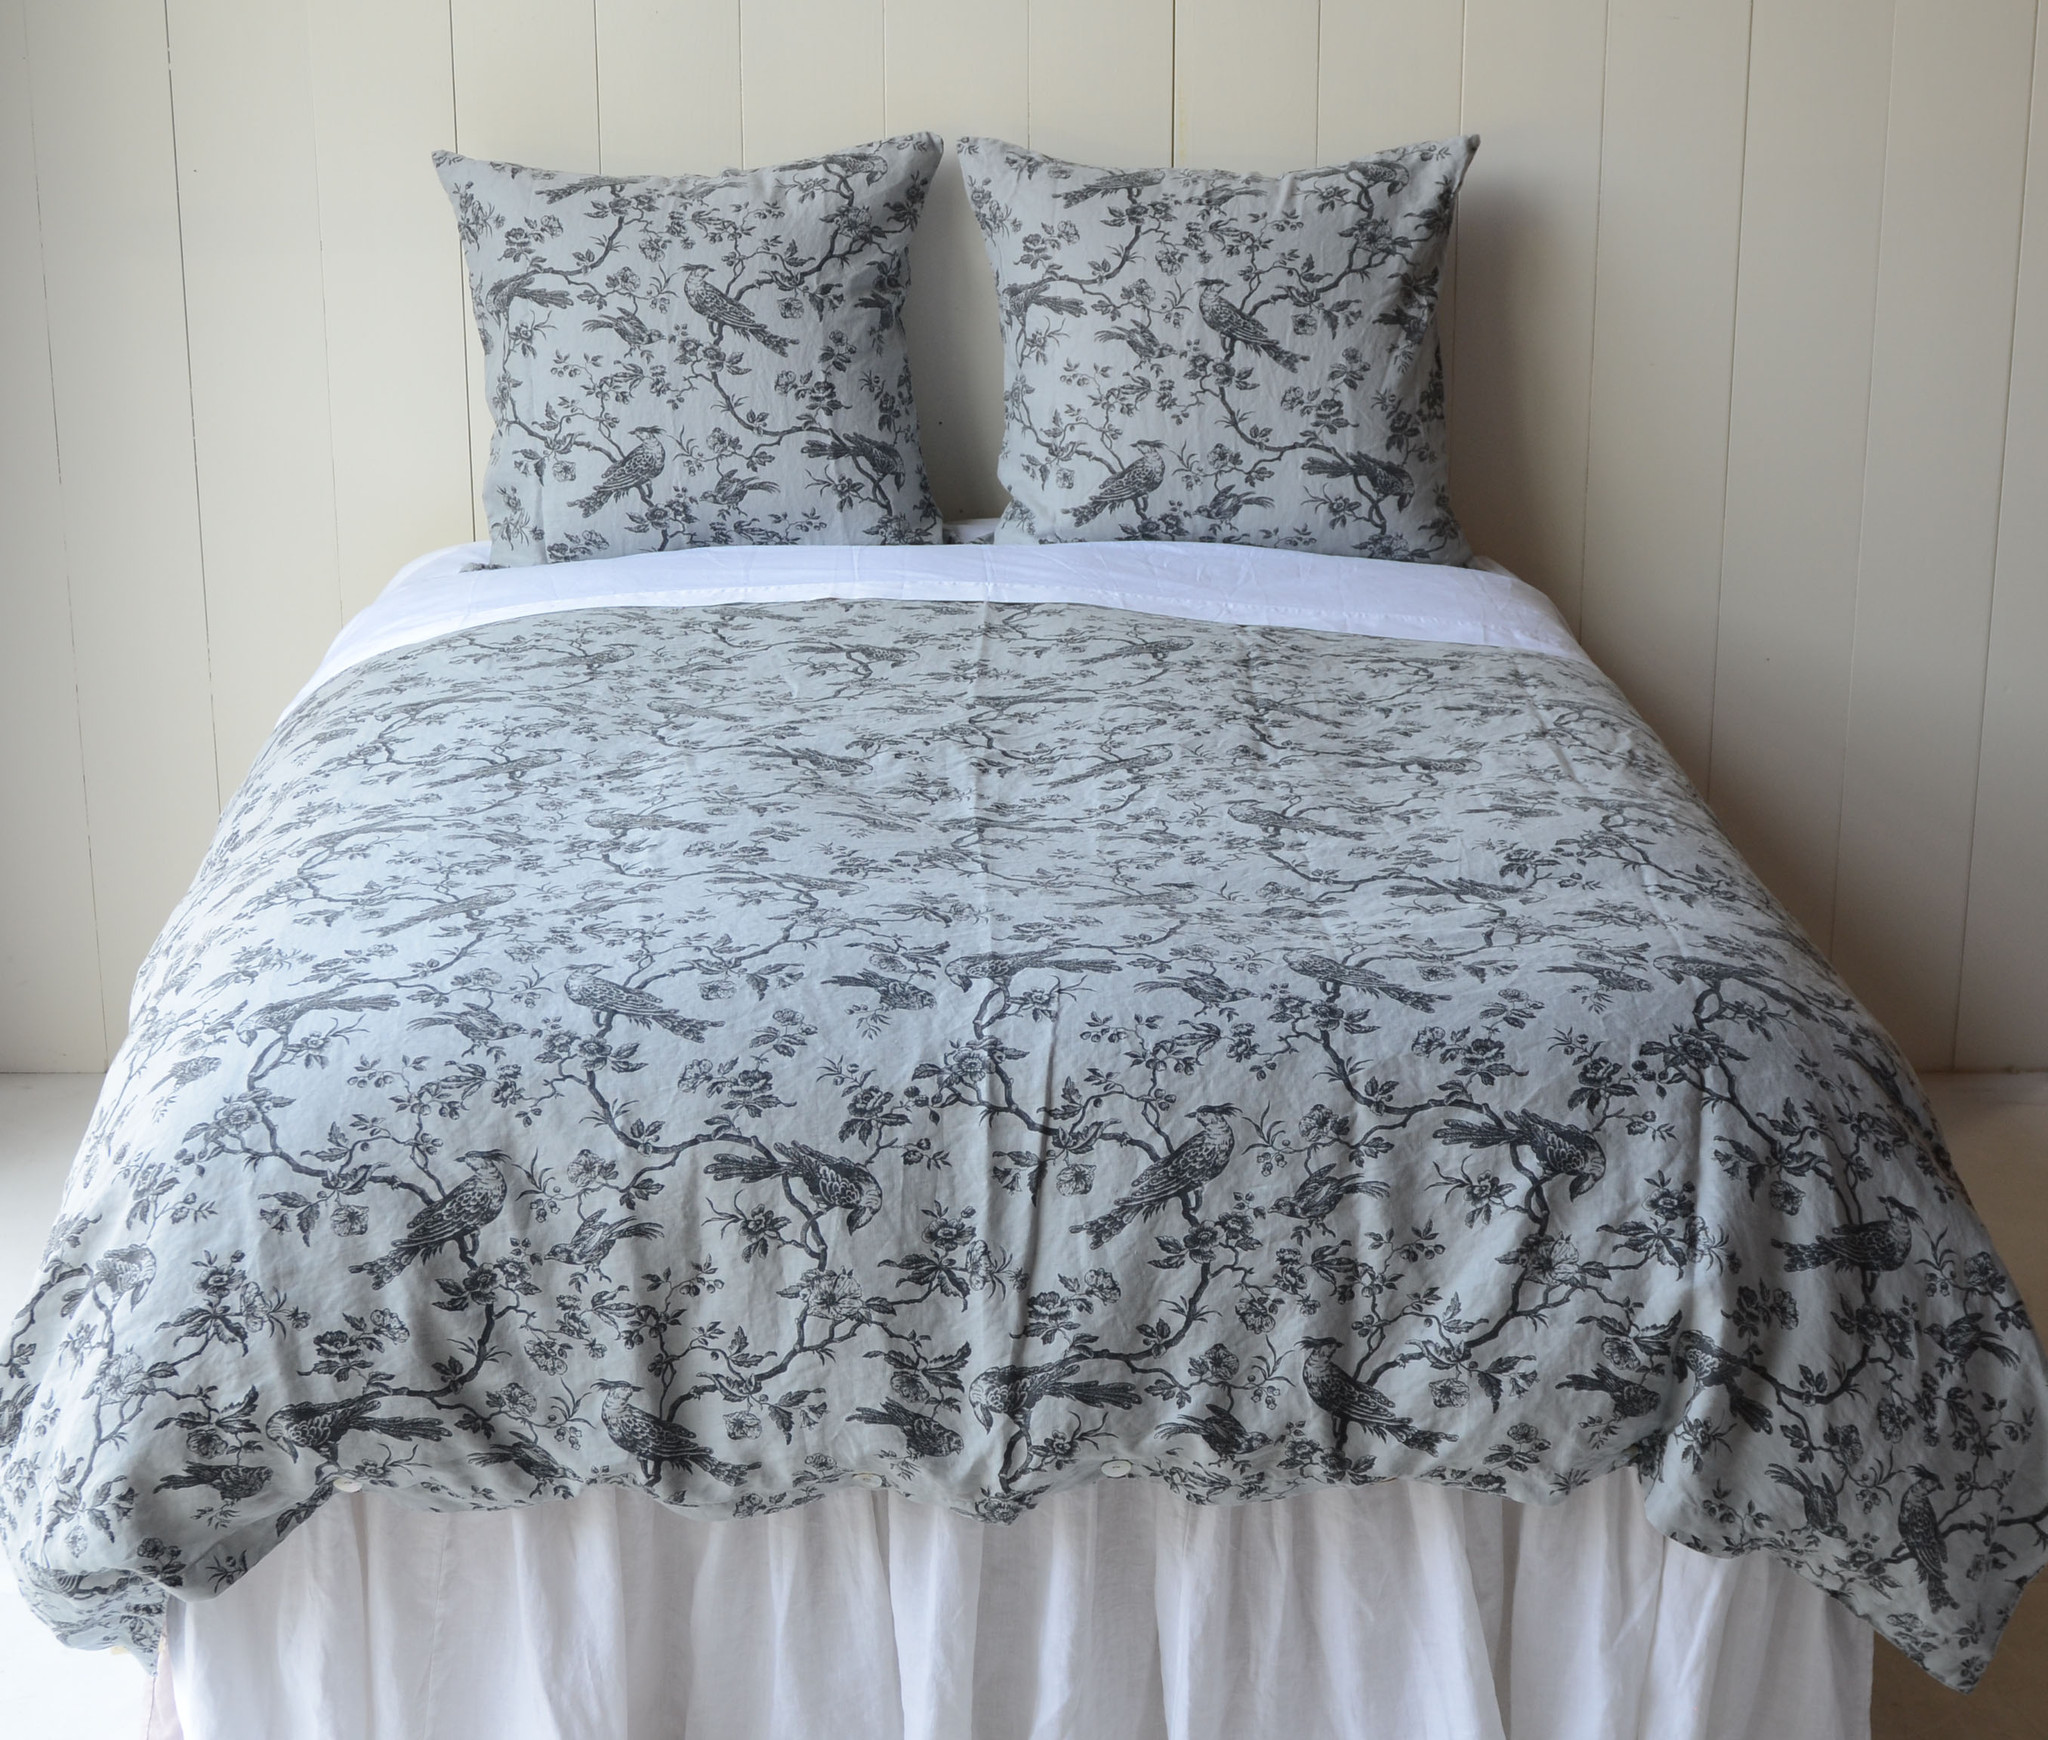 Bedroom gold duvet cover floral duvet covers queen for Ikea bed covers sets queen